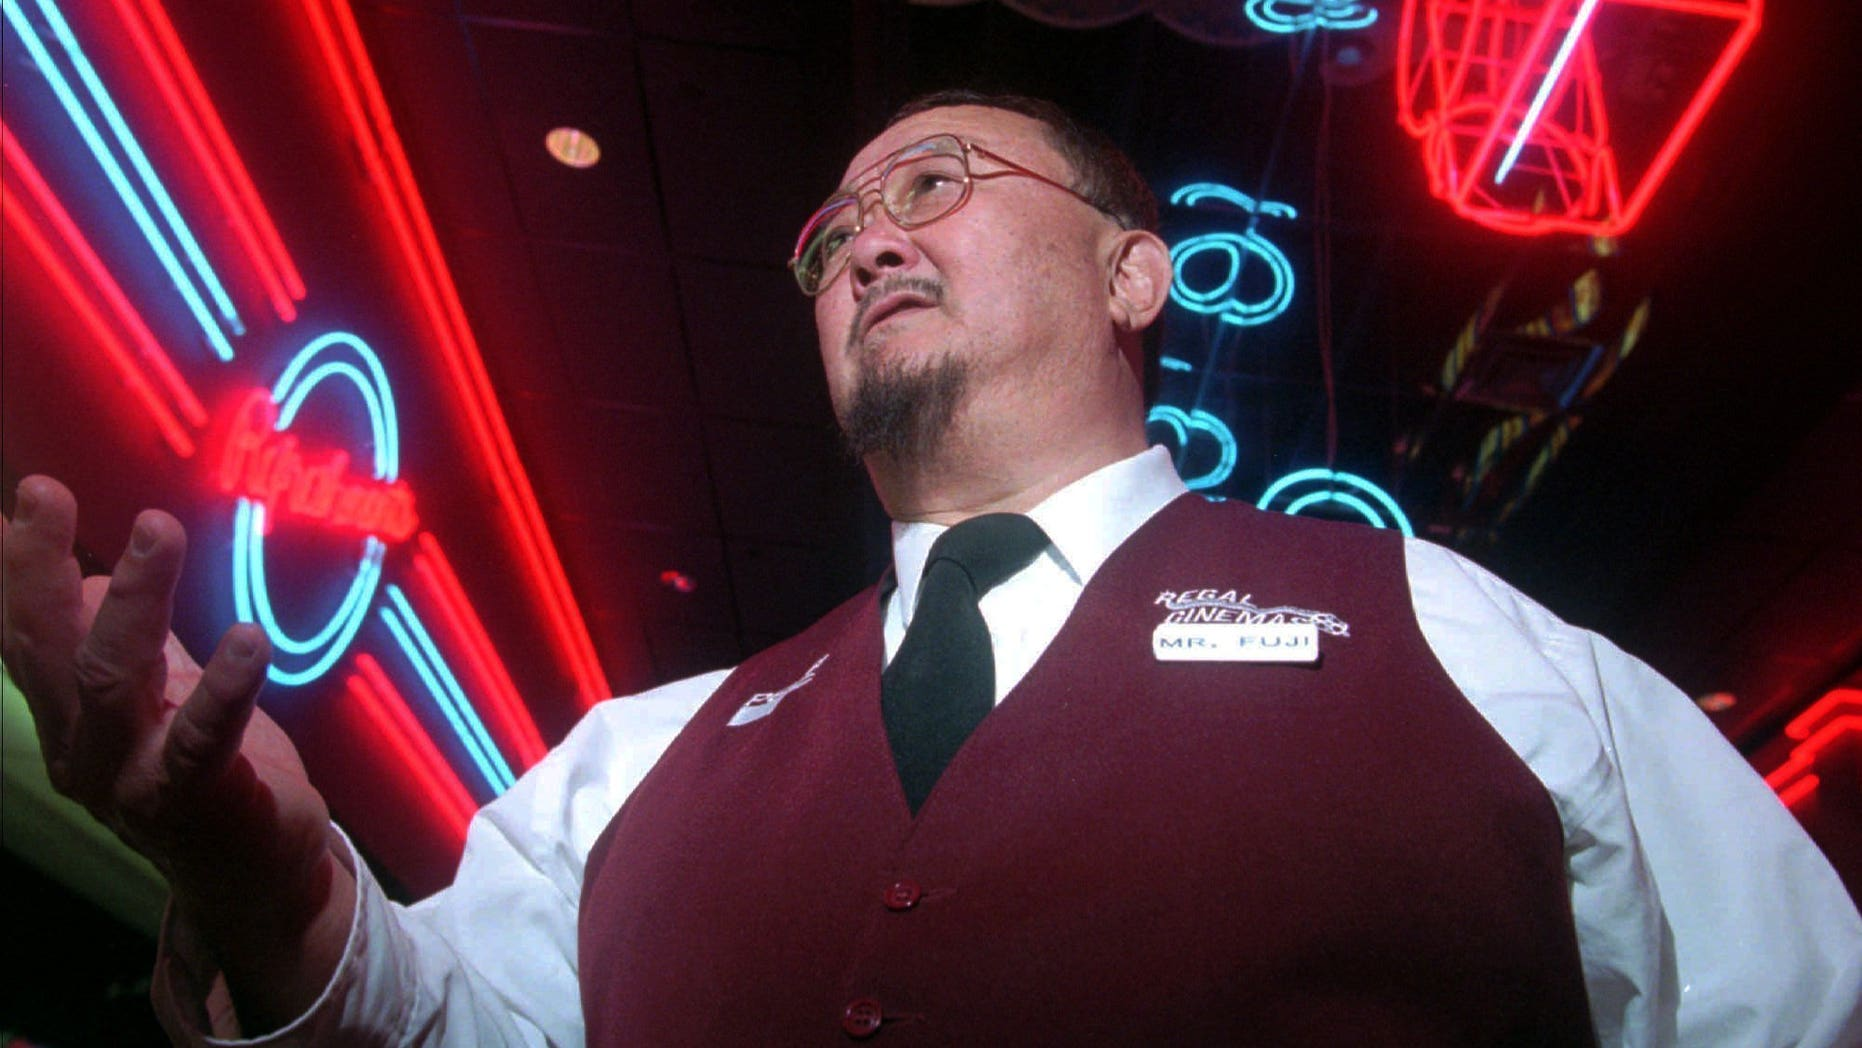 """In this April 2, 1999, file photo, Harry Fujiwara, a former wrestler known as """"Mr. Fuji,"""" appears at a movie theater where he works part time as an usher in Knoxville, Tenn."""